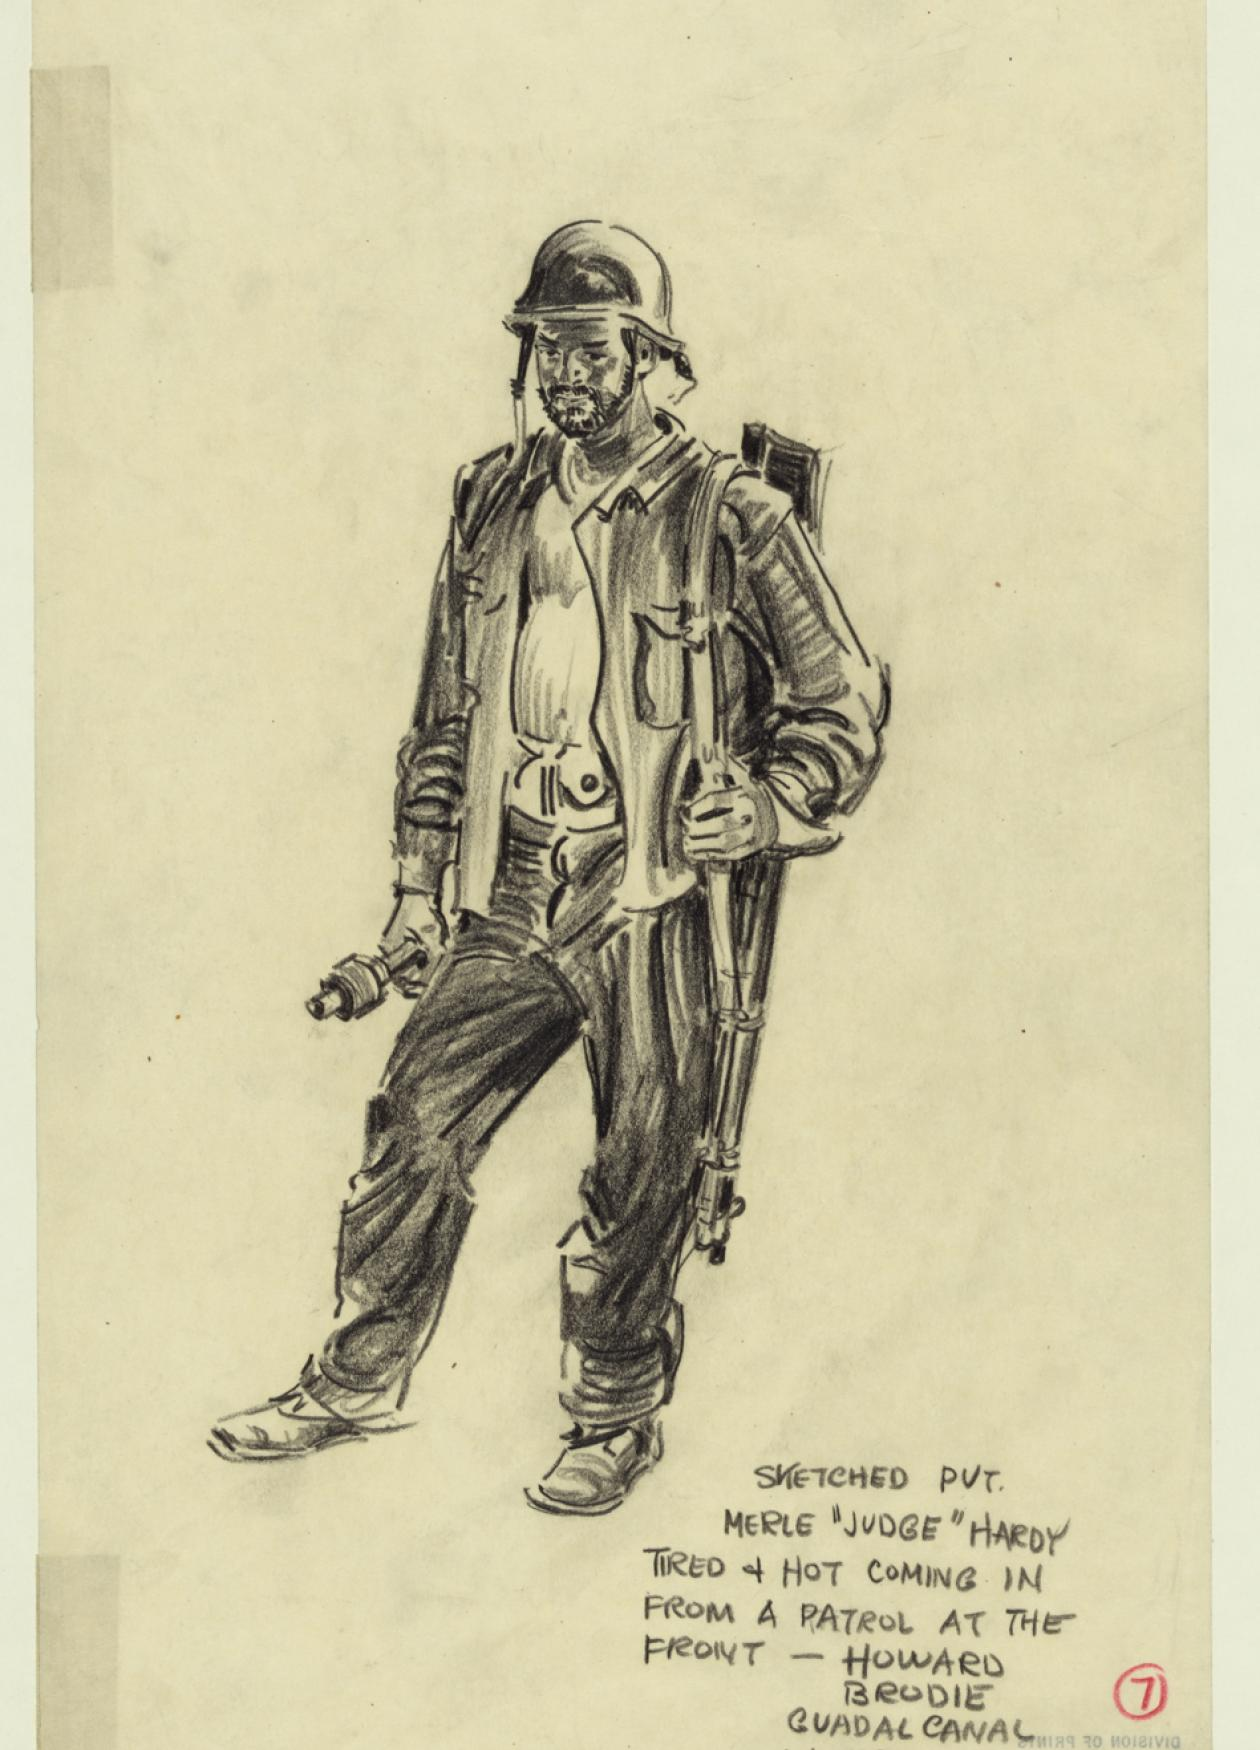 Sketch on yellow paper of an American soldier circa 1942.